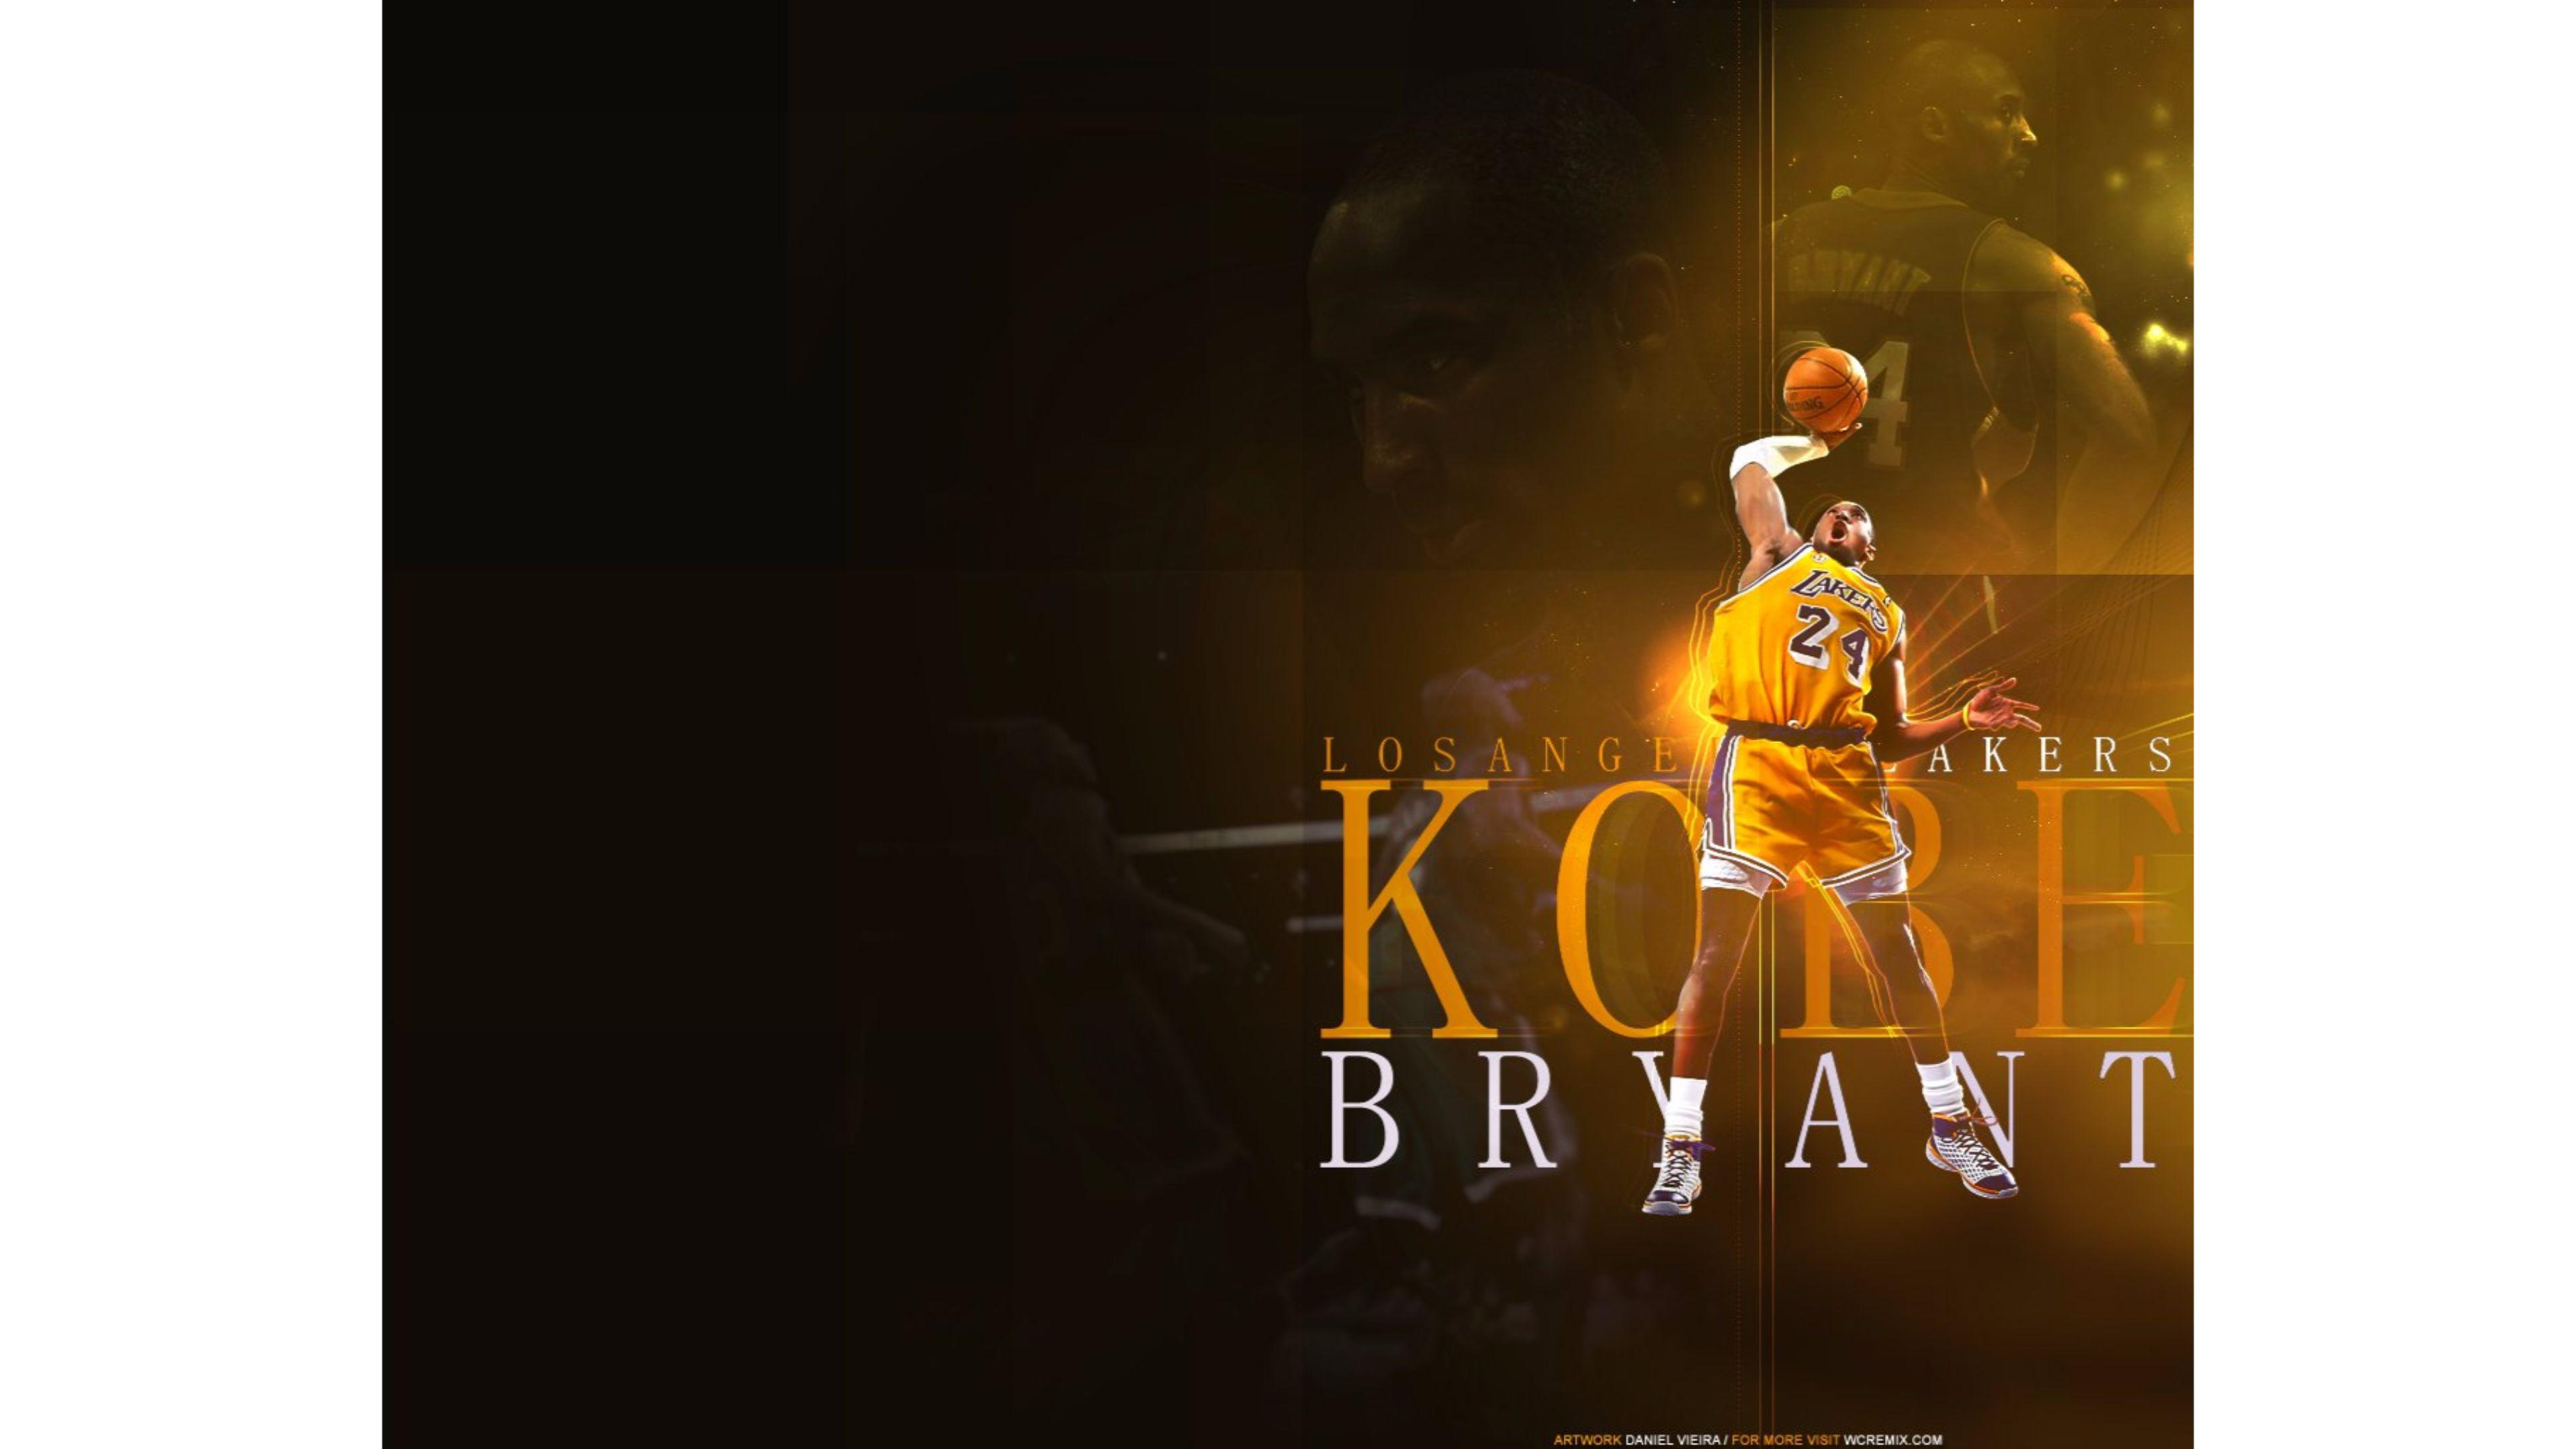 kobe bryant wallpaper 2016 - photo #23